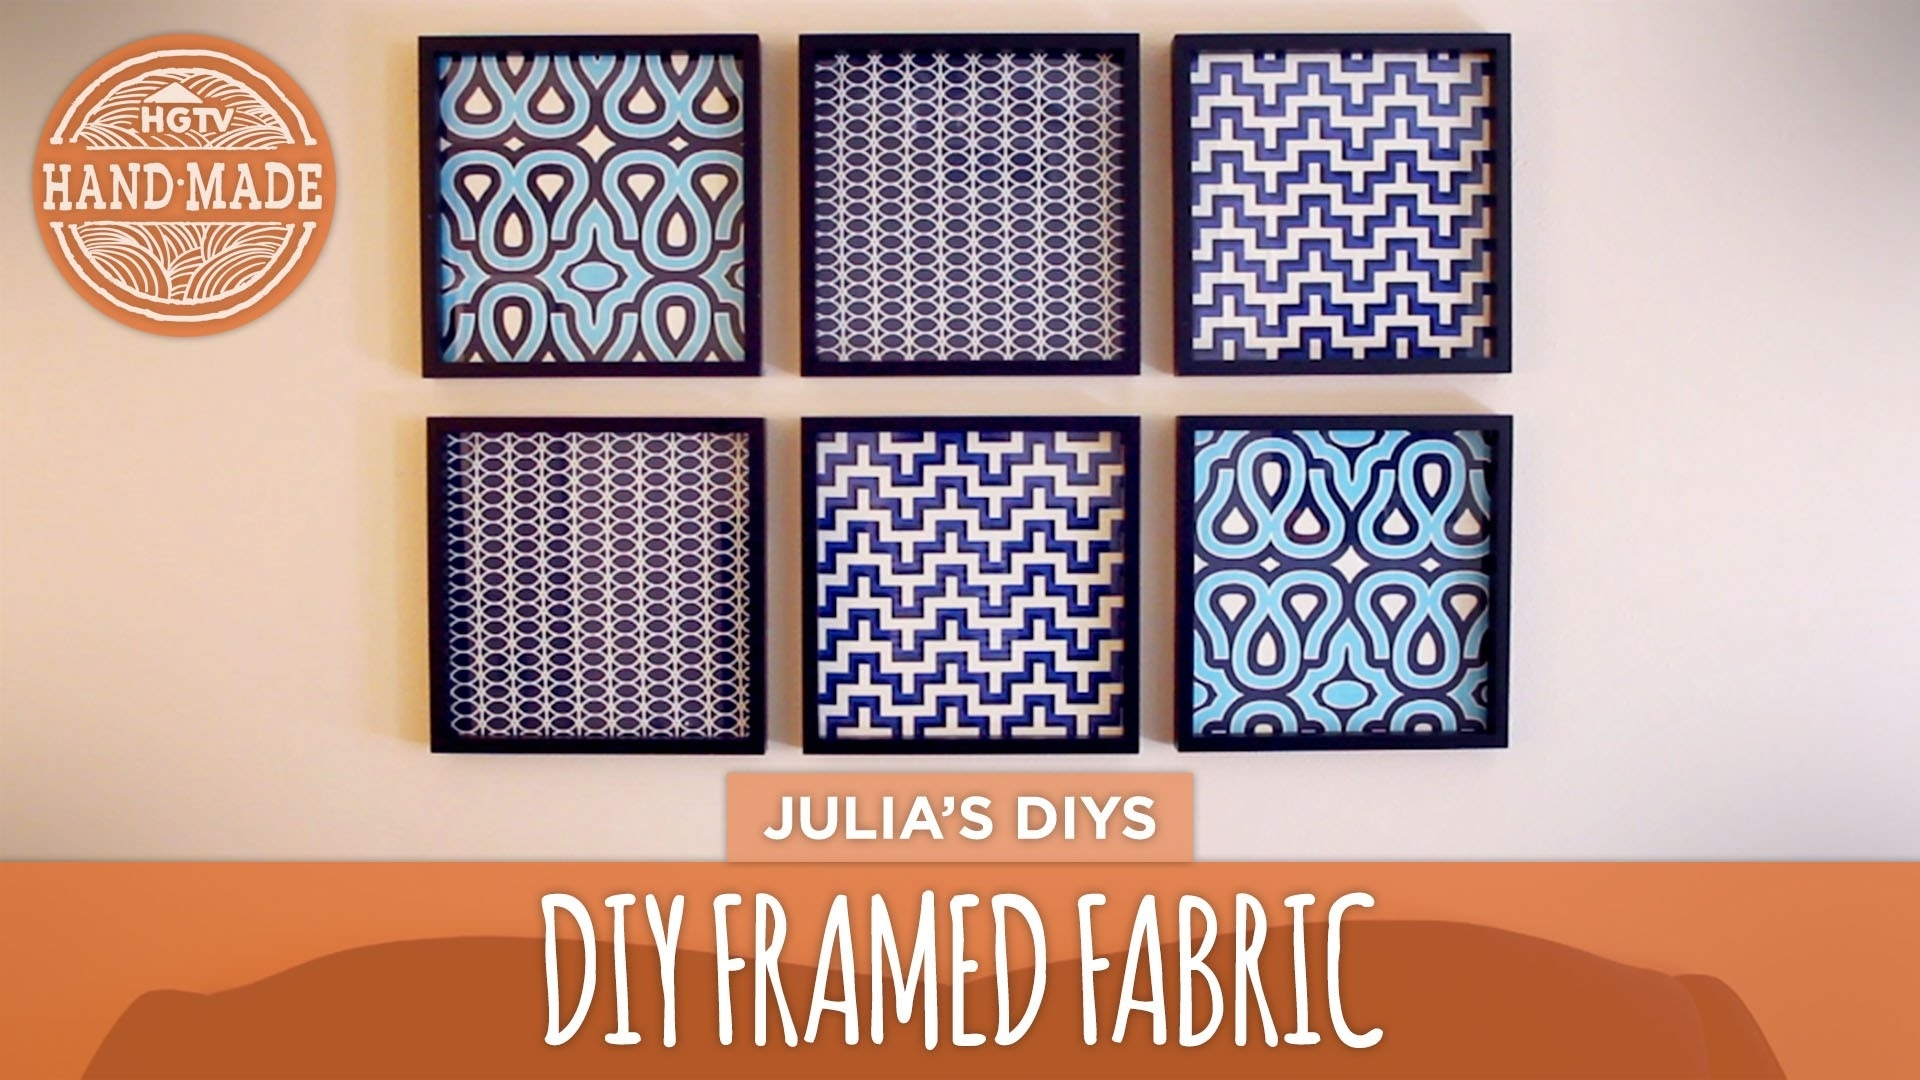 Diy Framed Fabric Gallery Wall – Hgtv Handmade – Youtube With Current Diy Fabric Cross Wall Art (Gallery 4 of 15)